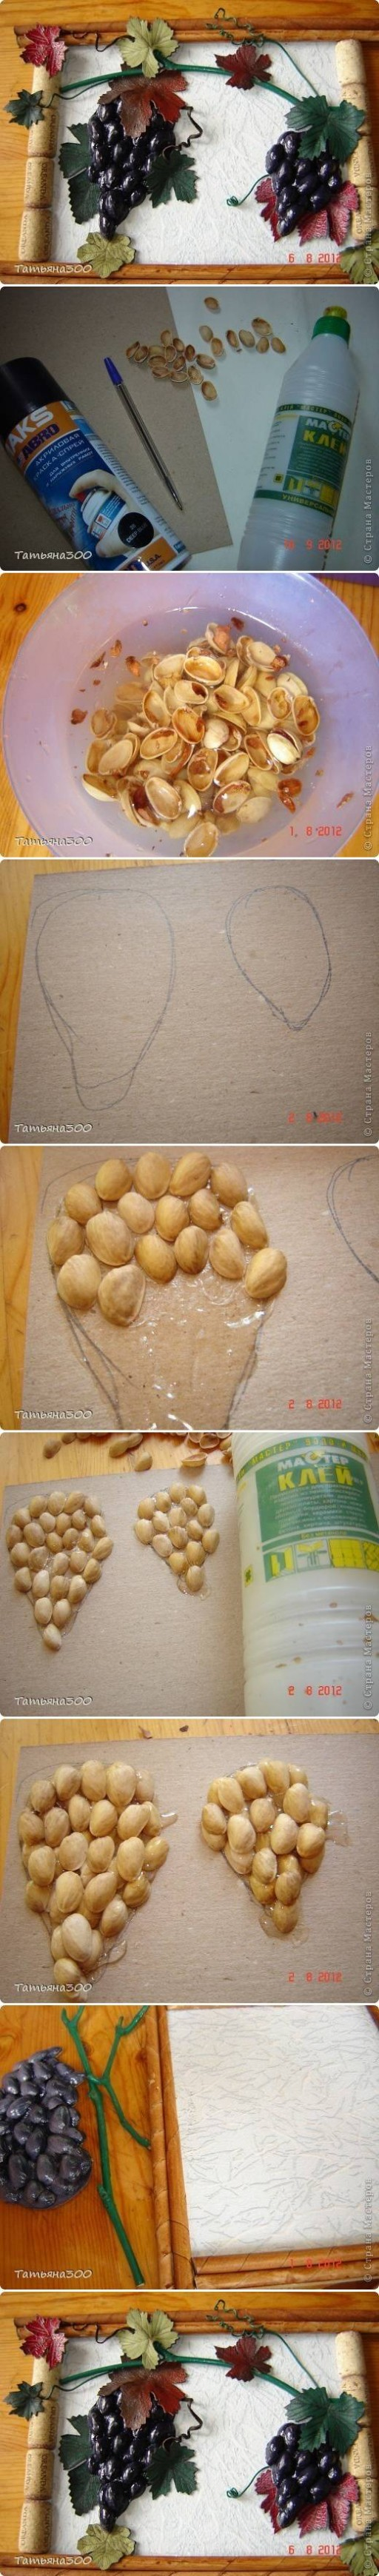 How to Make Grape Bunch of Pistachios step by step DIY tutorial instructions